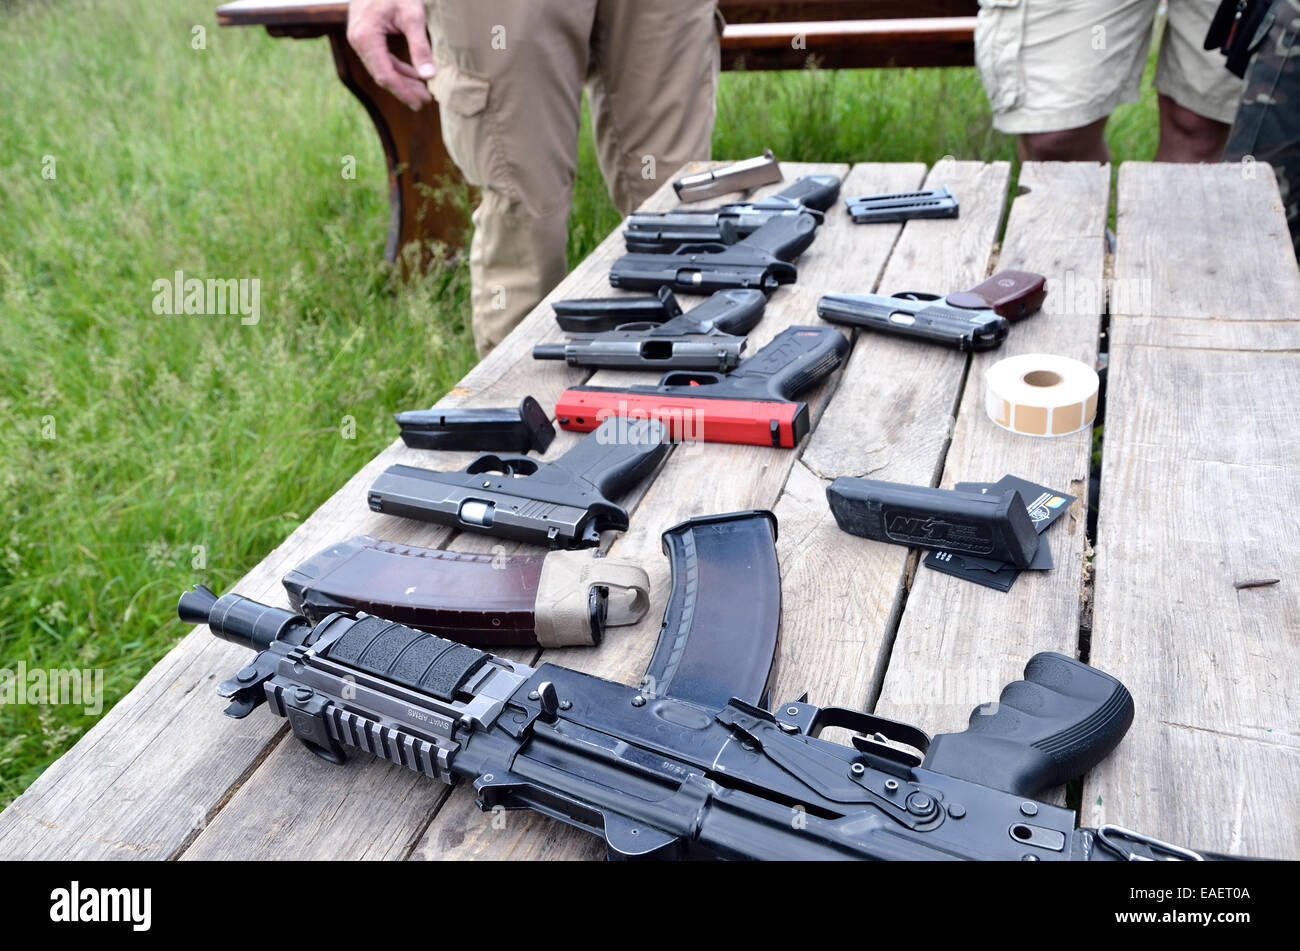 Portable guns on the table - Stock Image